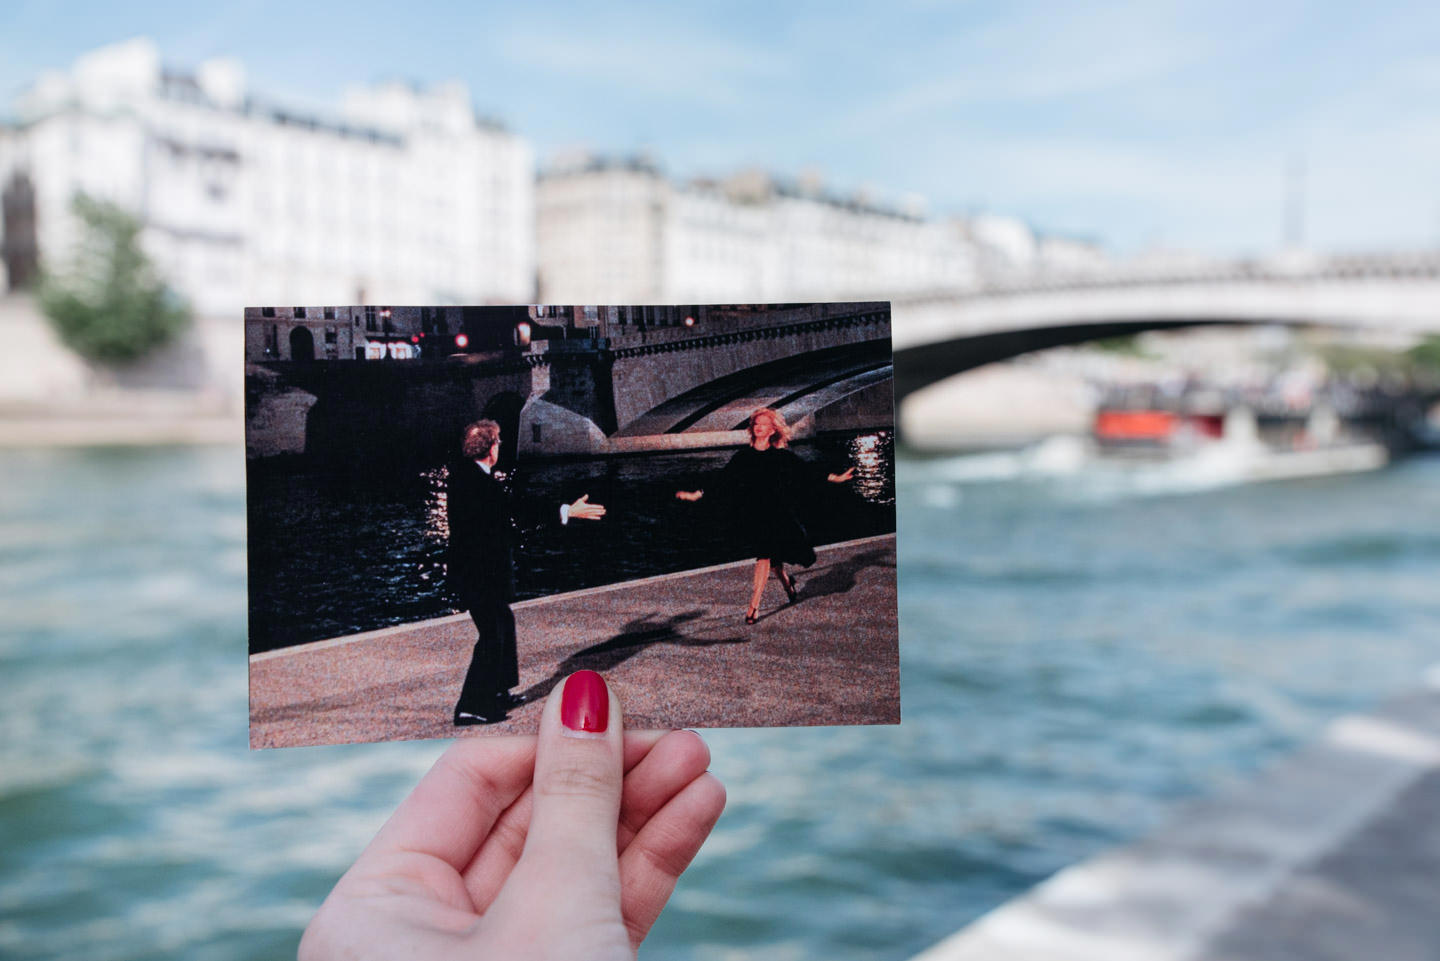 Blog-Mode-And-the-City-mon-paris-du-cinema-mastercard-7